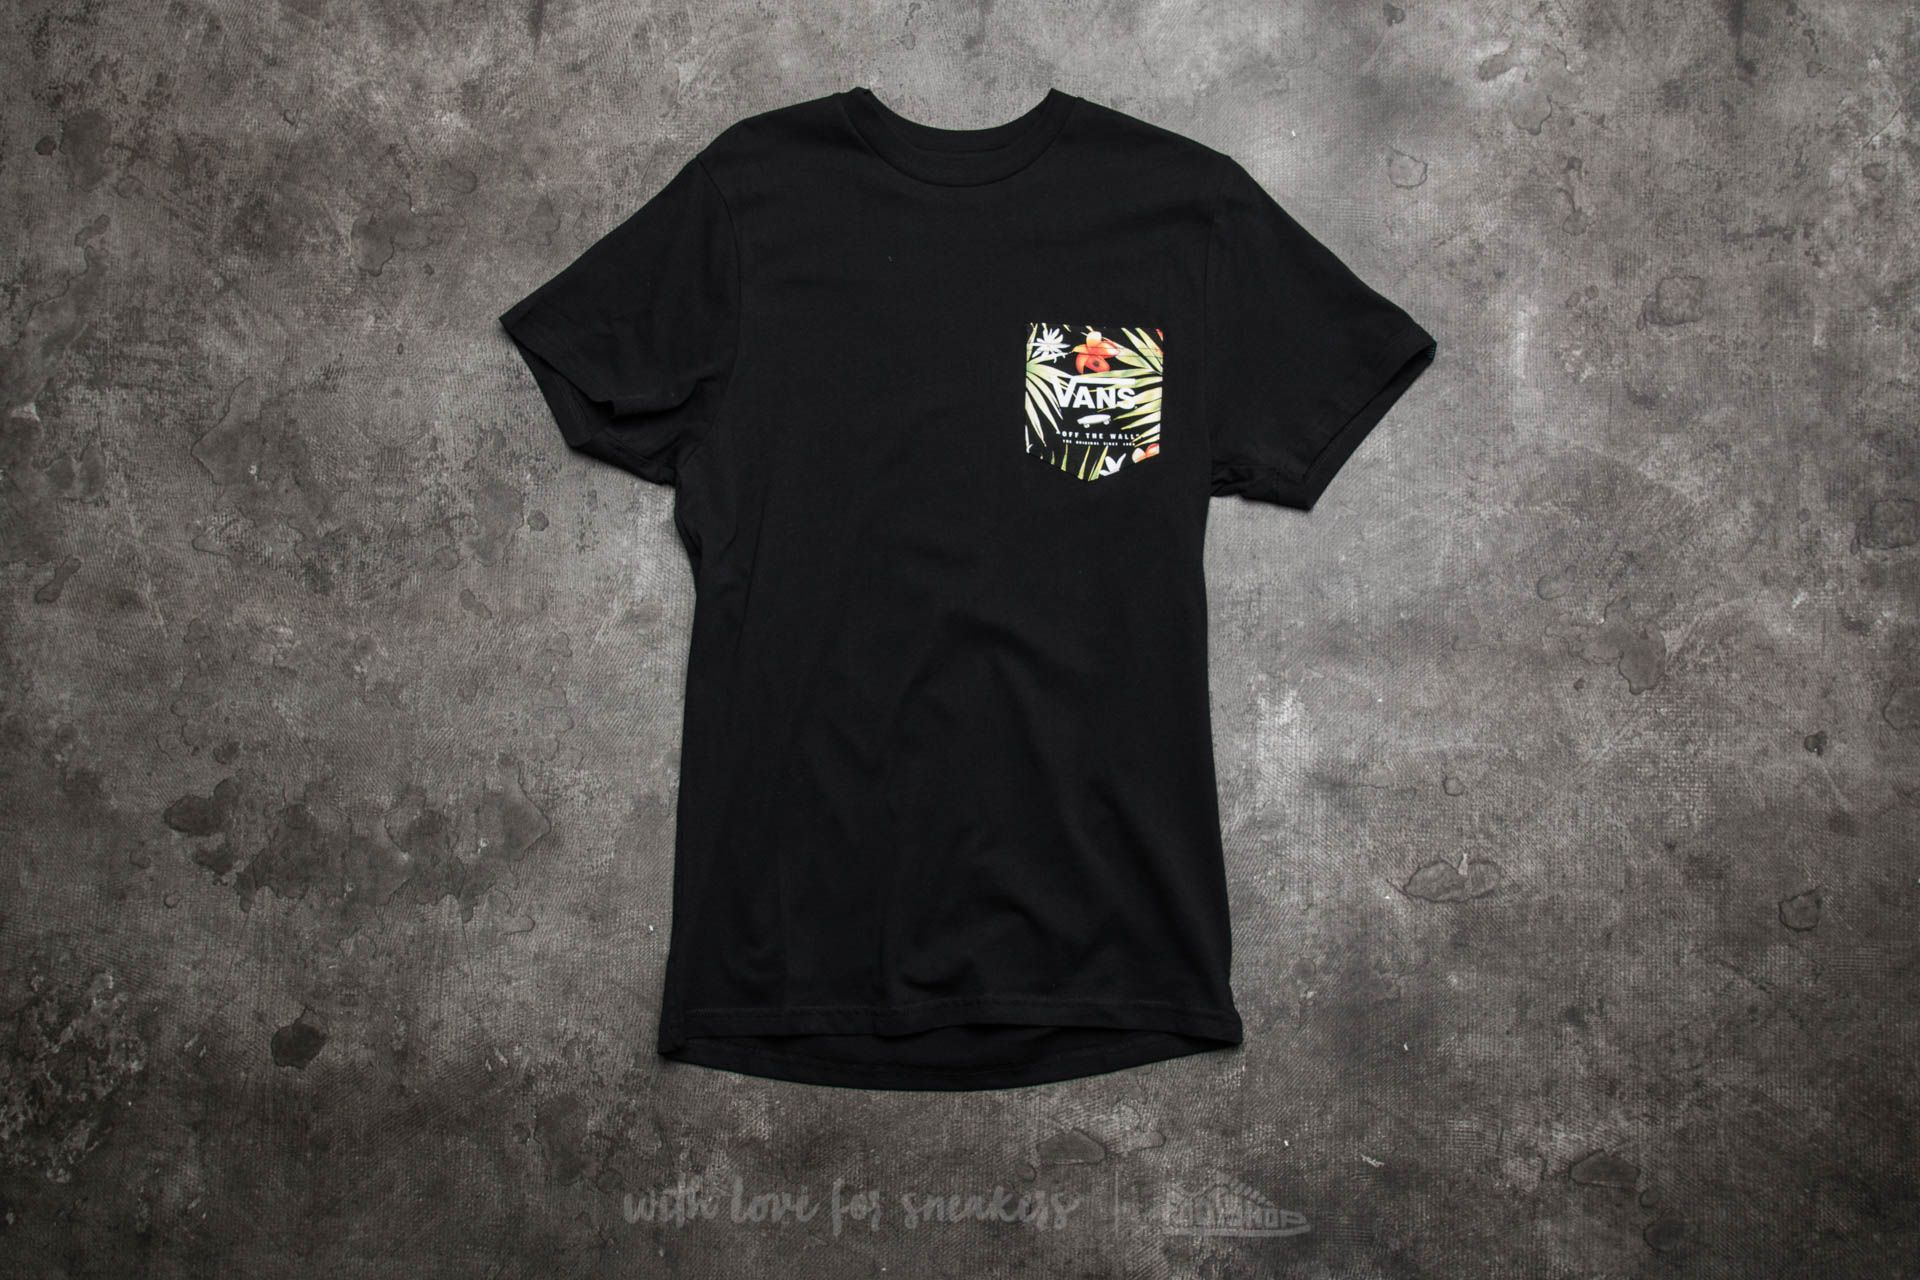 4cb74d5090b6a0 Vans Mn Print Box Pocket Tee Black-Black Decay Palm